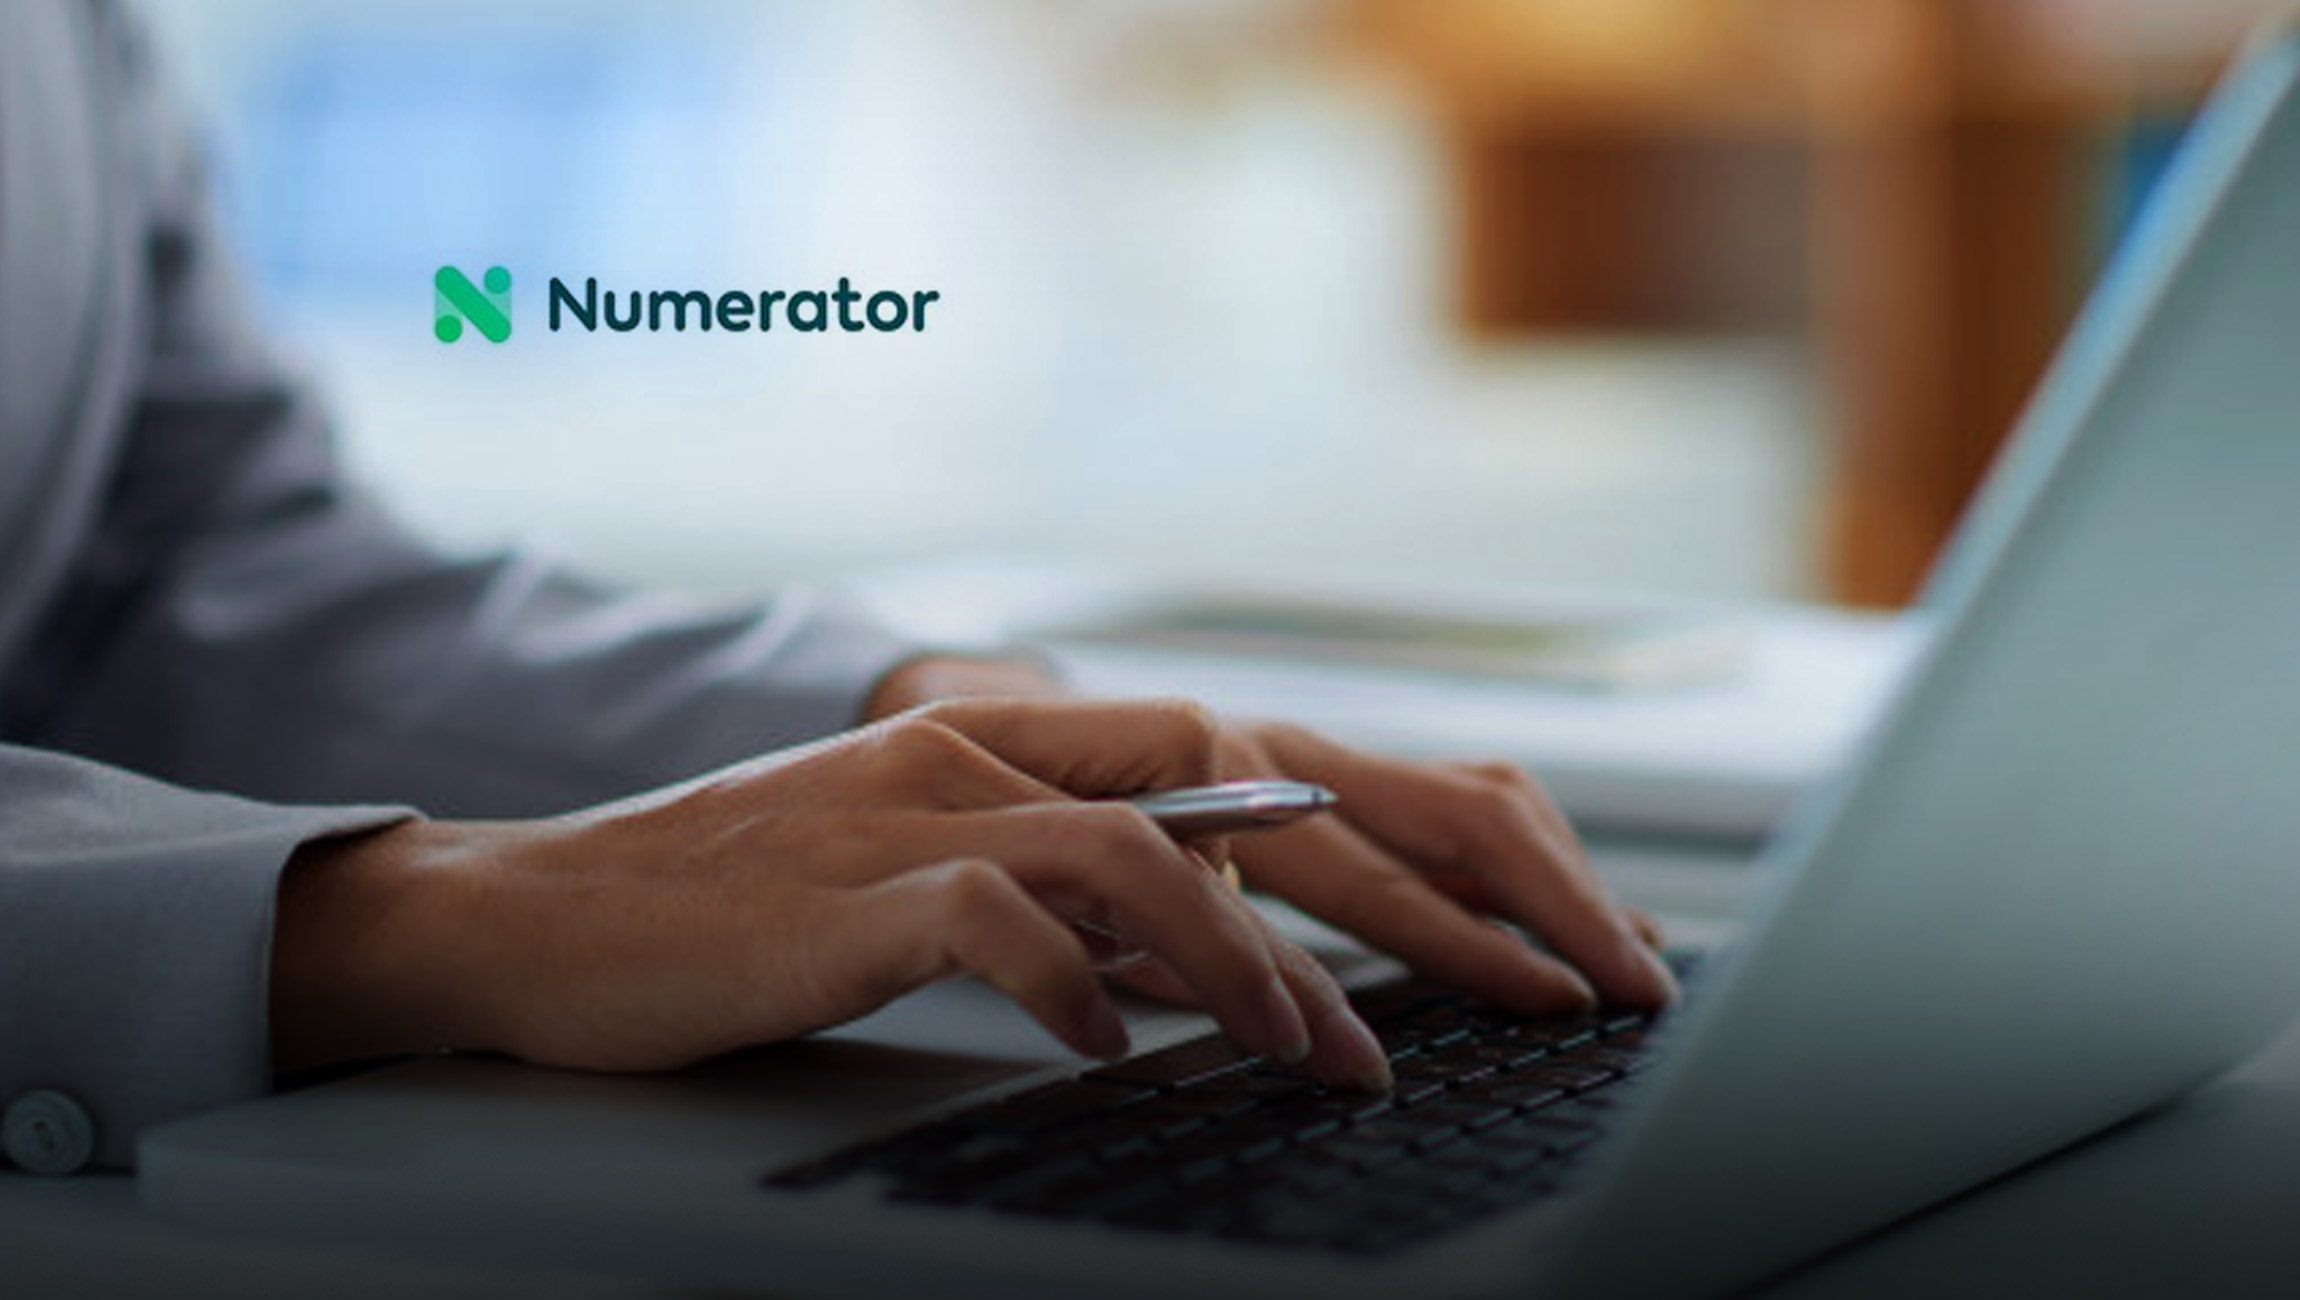 Numerator Launches Promo Insights, Linking Consumer Purchase Behavior Back To Promotions